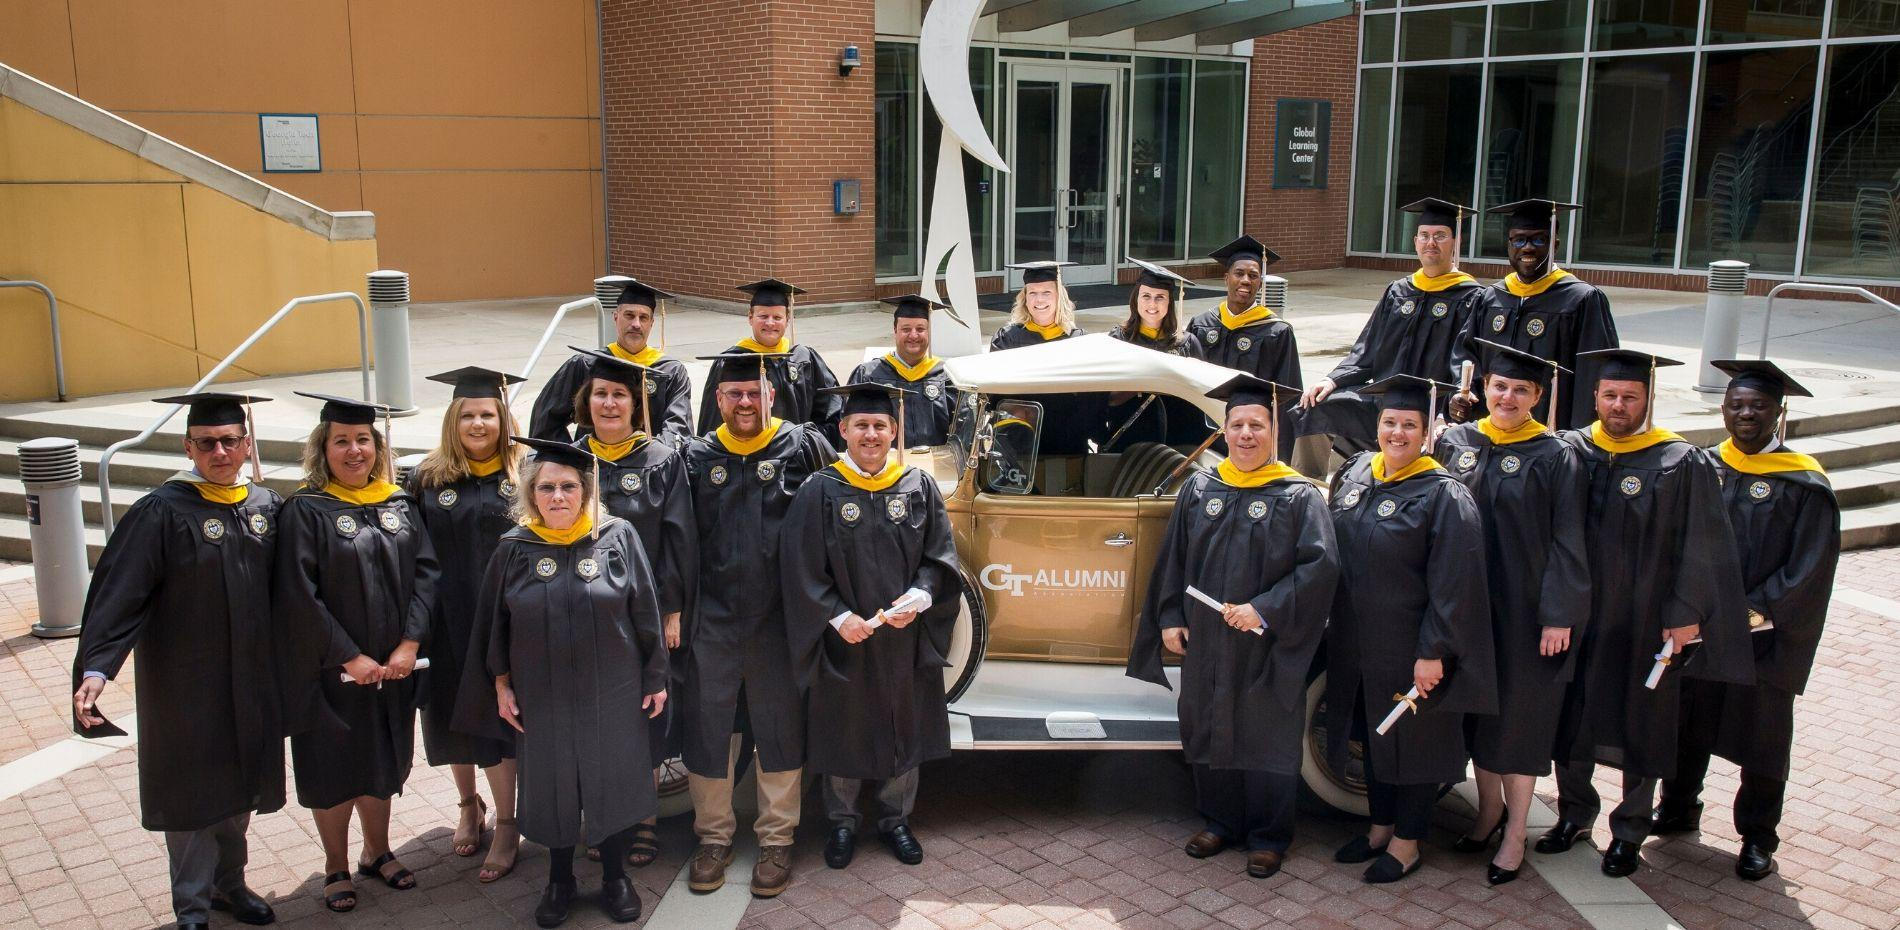 Professional Master's in Occupational Safety and Health graduates stand in front of the Ramblin' Wreck in their caps and gowns.